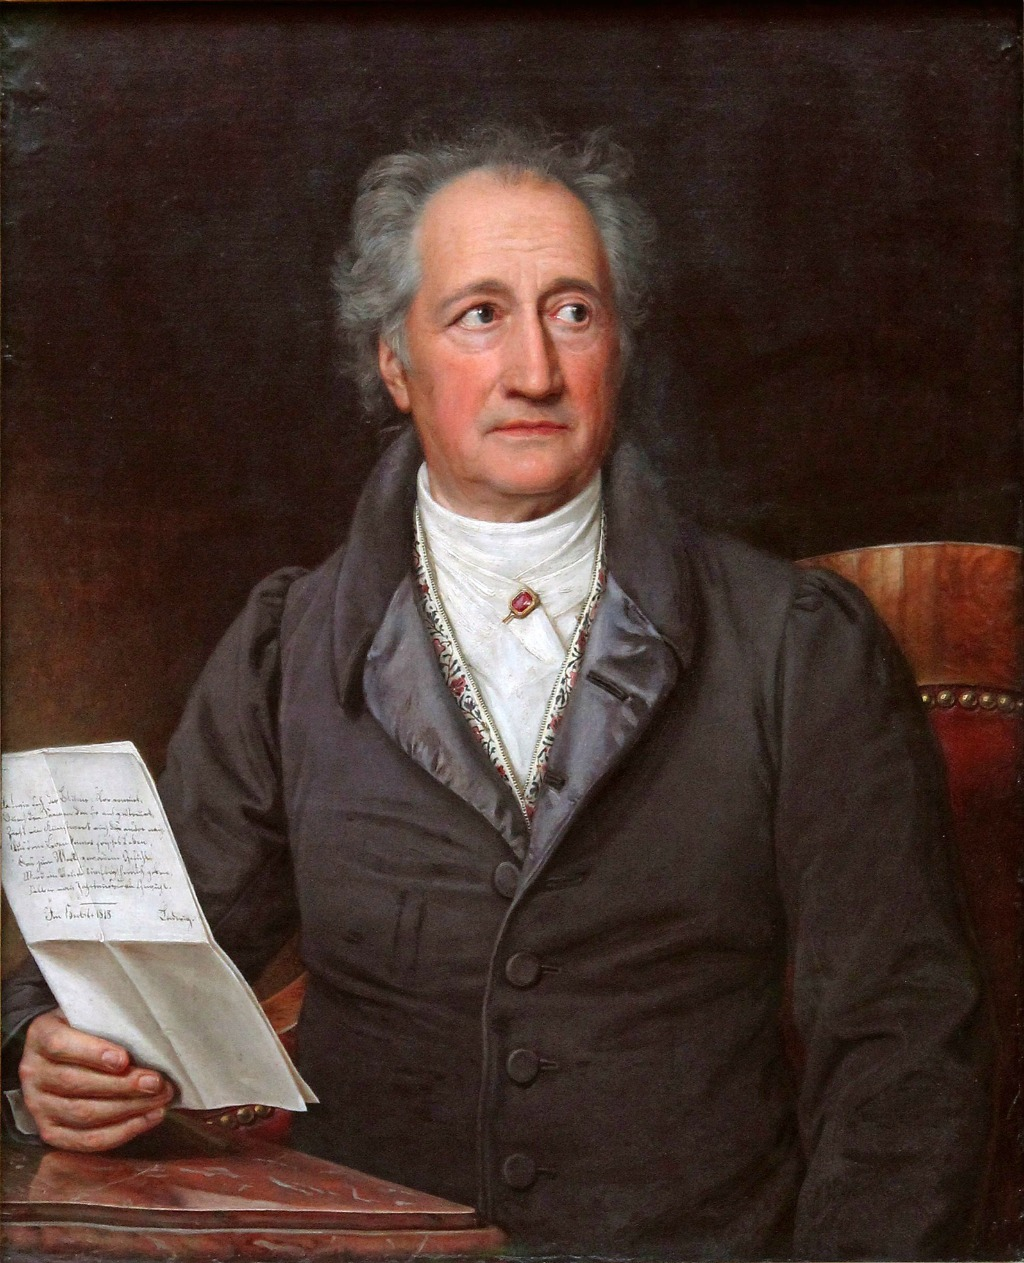 an introduction to the literature by johann wolfgang von goethe Get information, facts, and pictures about johann wolfgang von goethe at encyclopediacom make research projects and school reports about johann wolfgang von goethe.